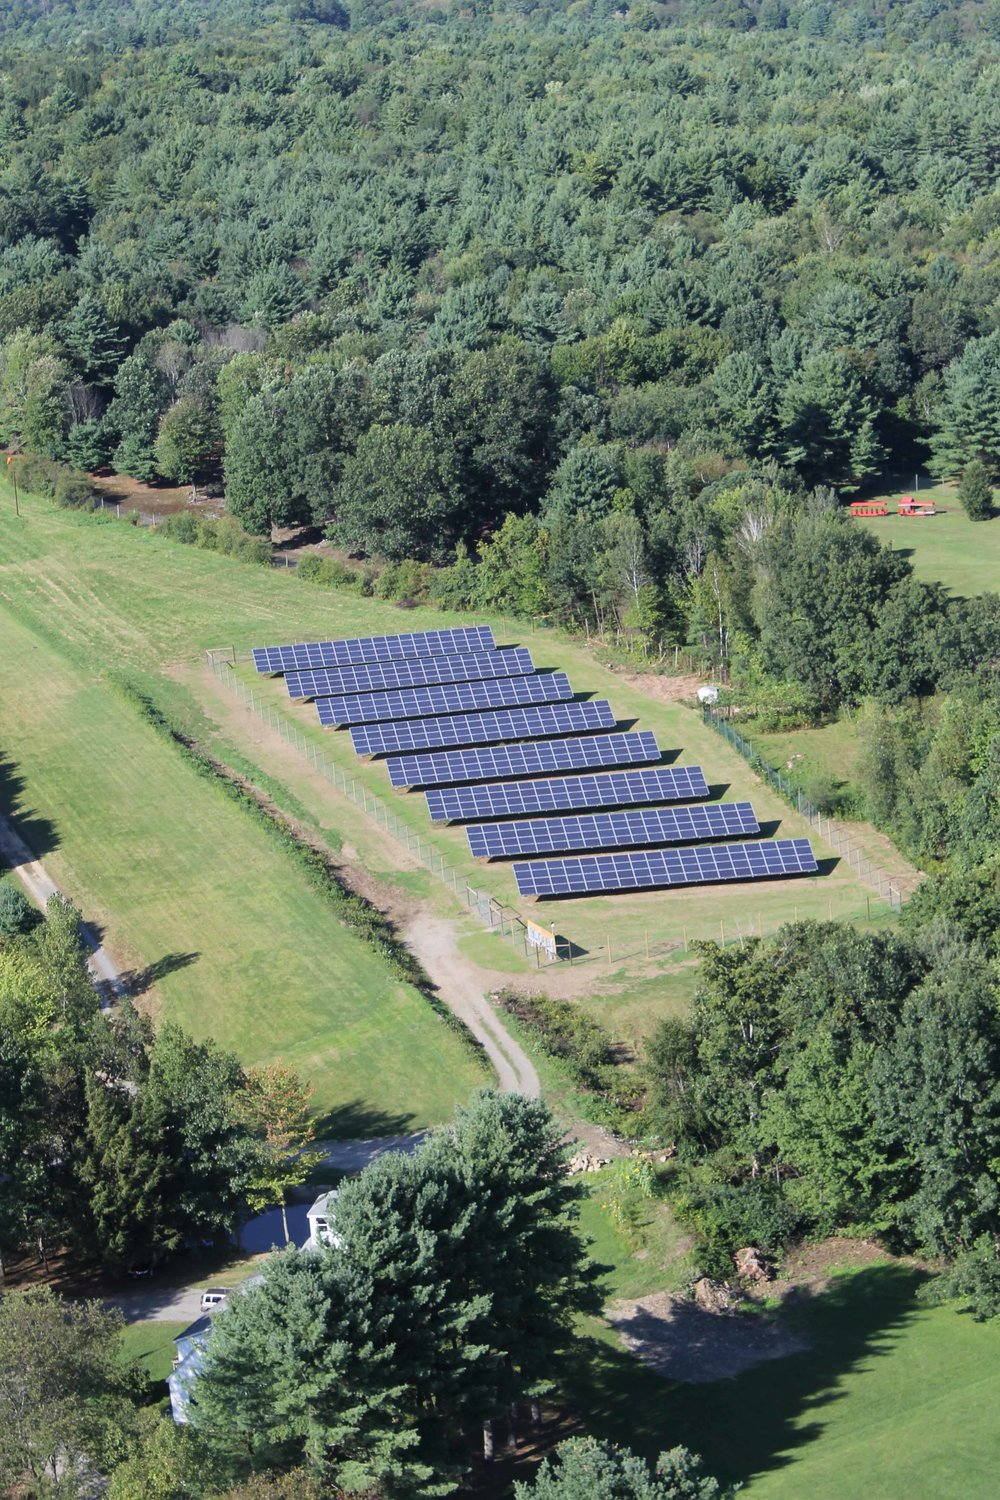 145 kW array, Green Mountain Power, Putney VT